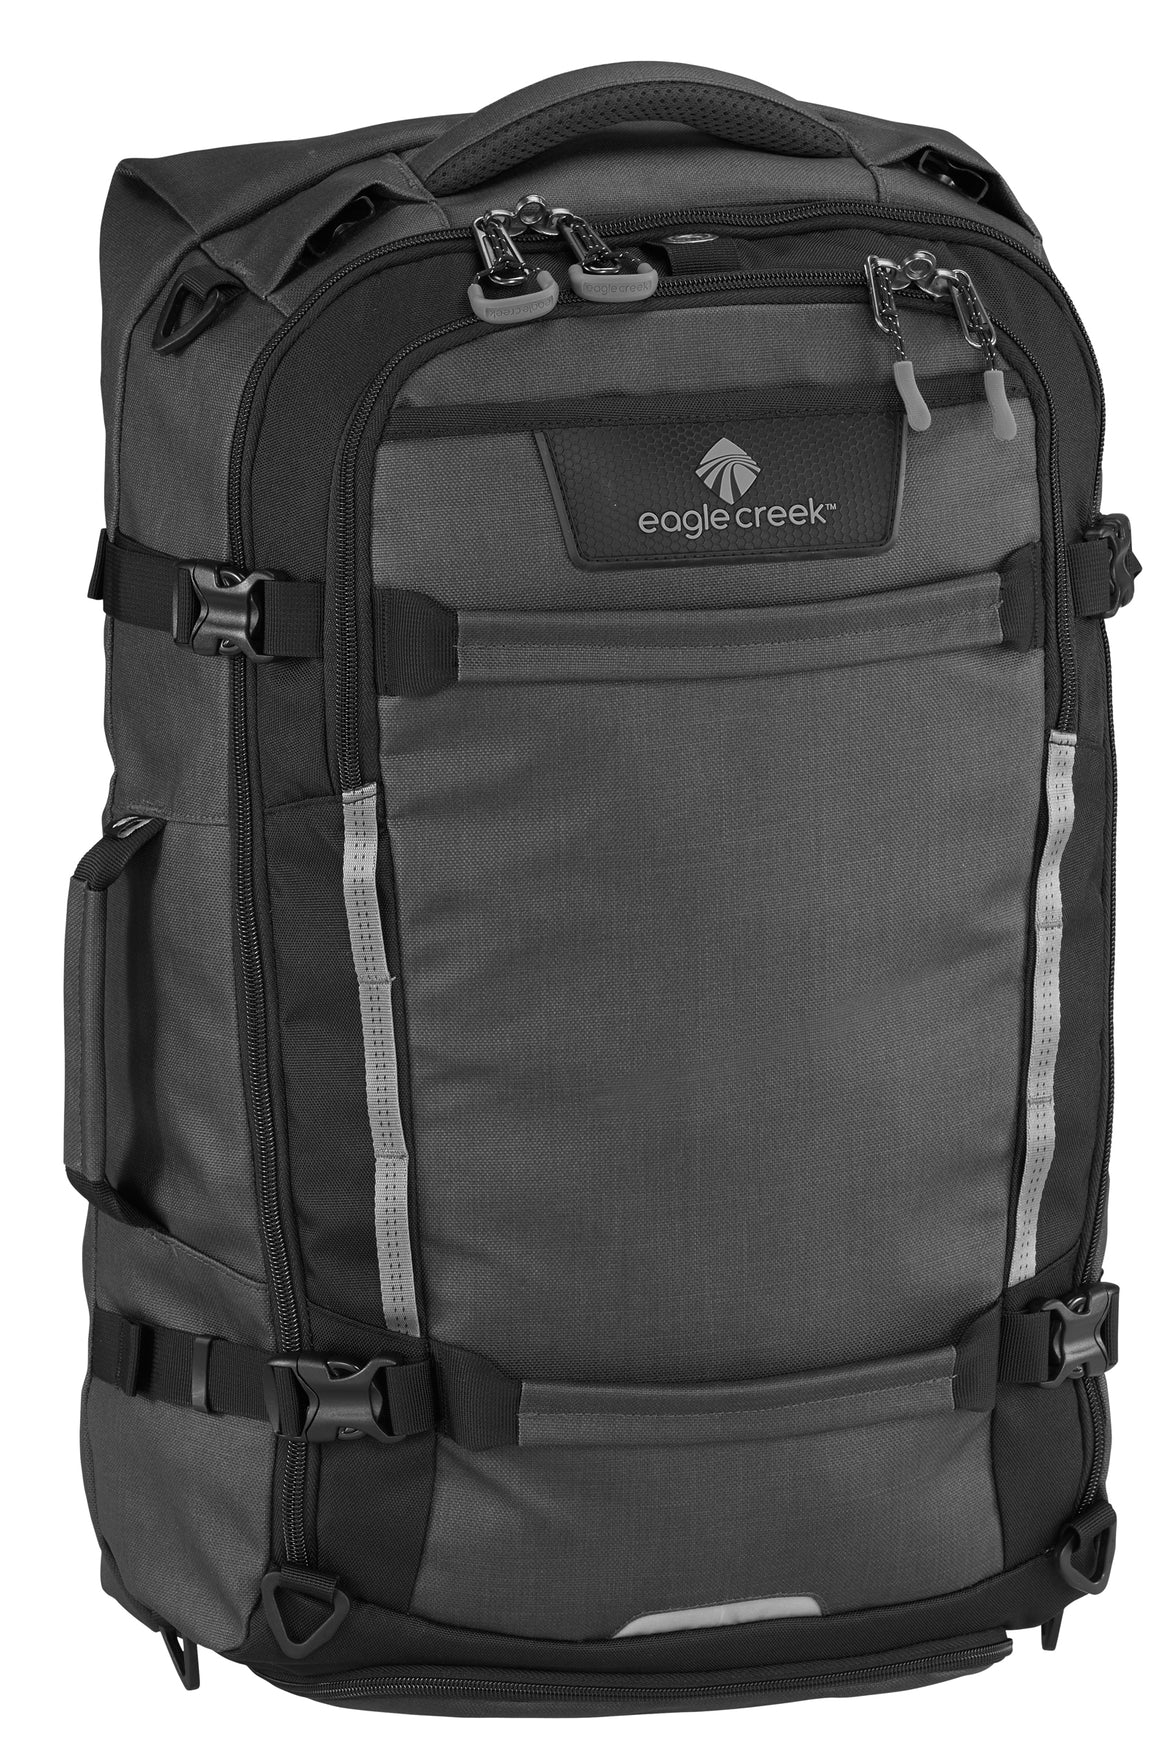 Eagle Creek Gear Hauler Convertible Backpack Asphalt Black